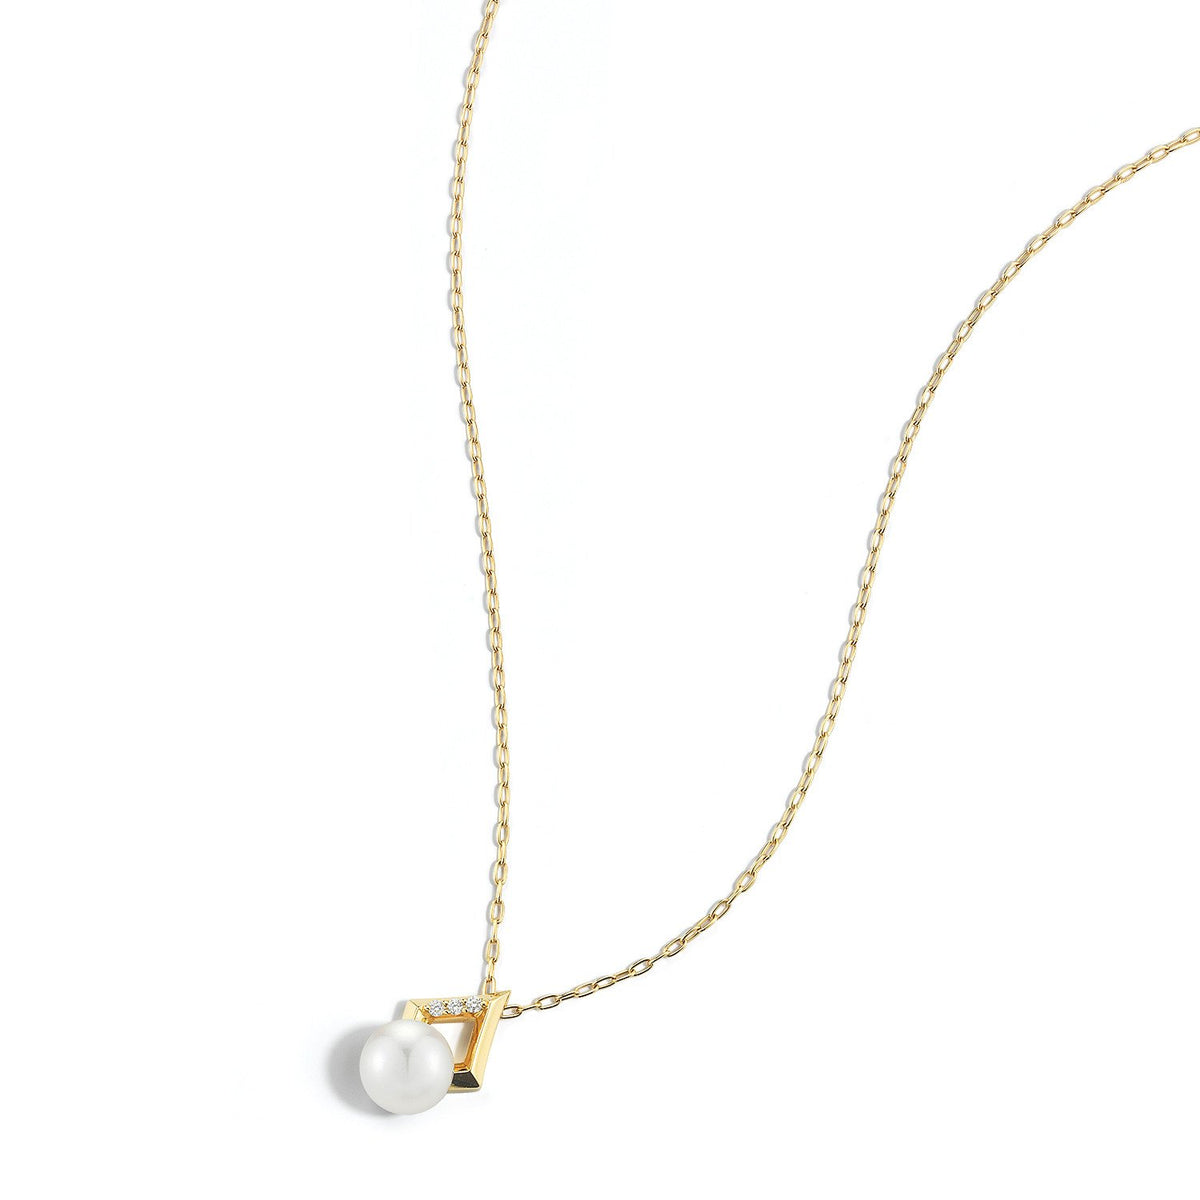 Valani 18K Yellow Gold Kharis Pearl Necklace